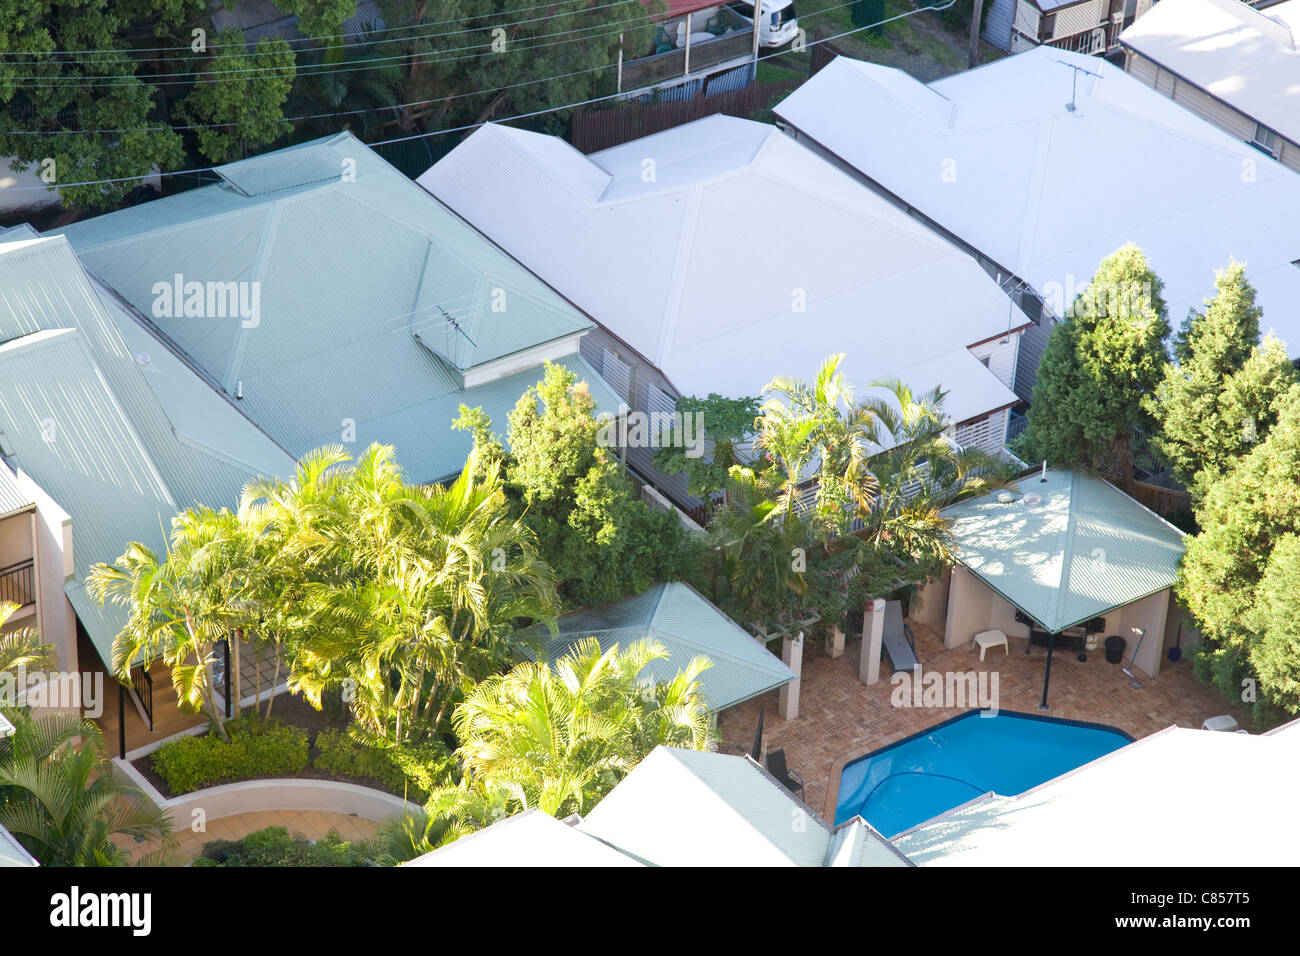 looking down on residential roofs and swimming pool,brisbane,queensland,australia - Stock Image